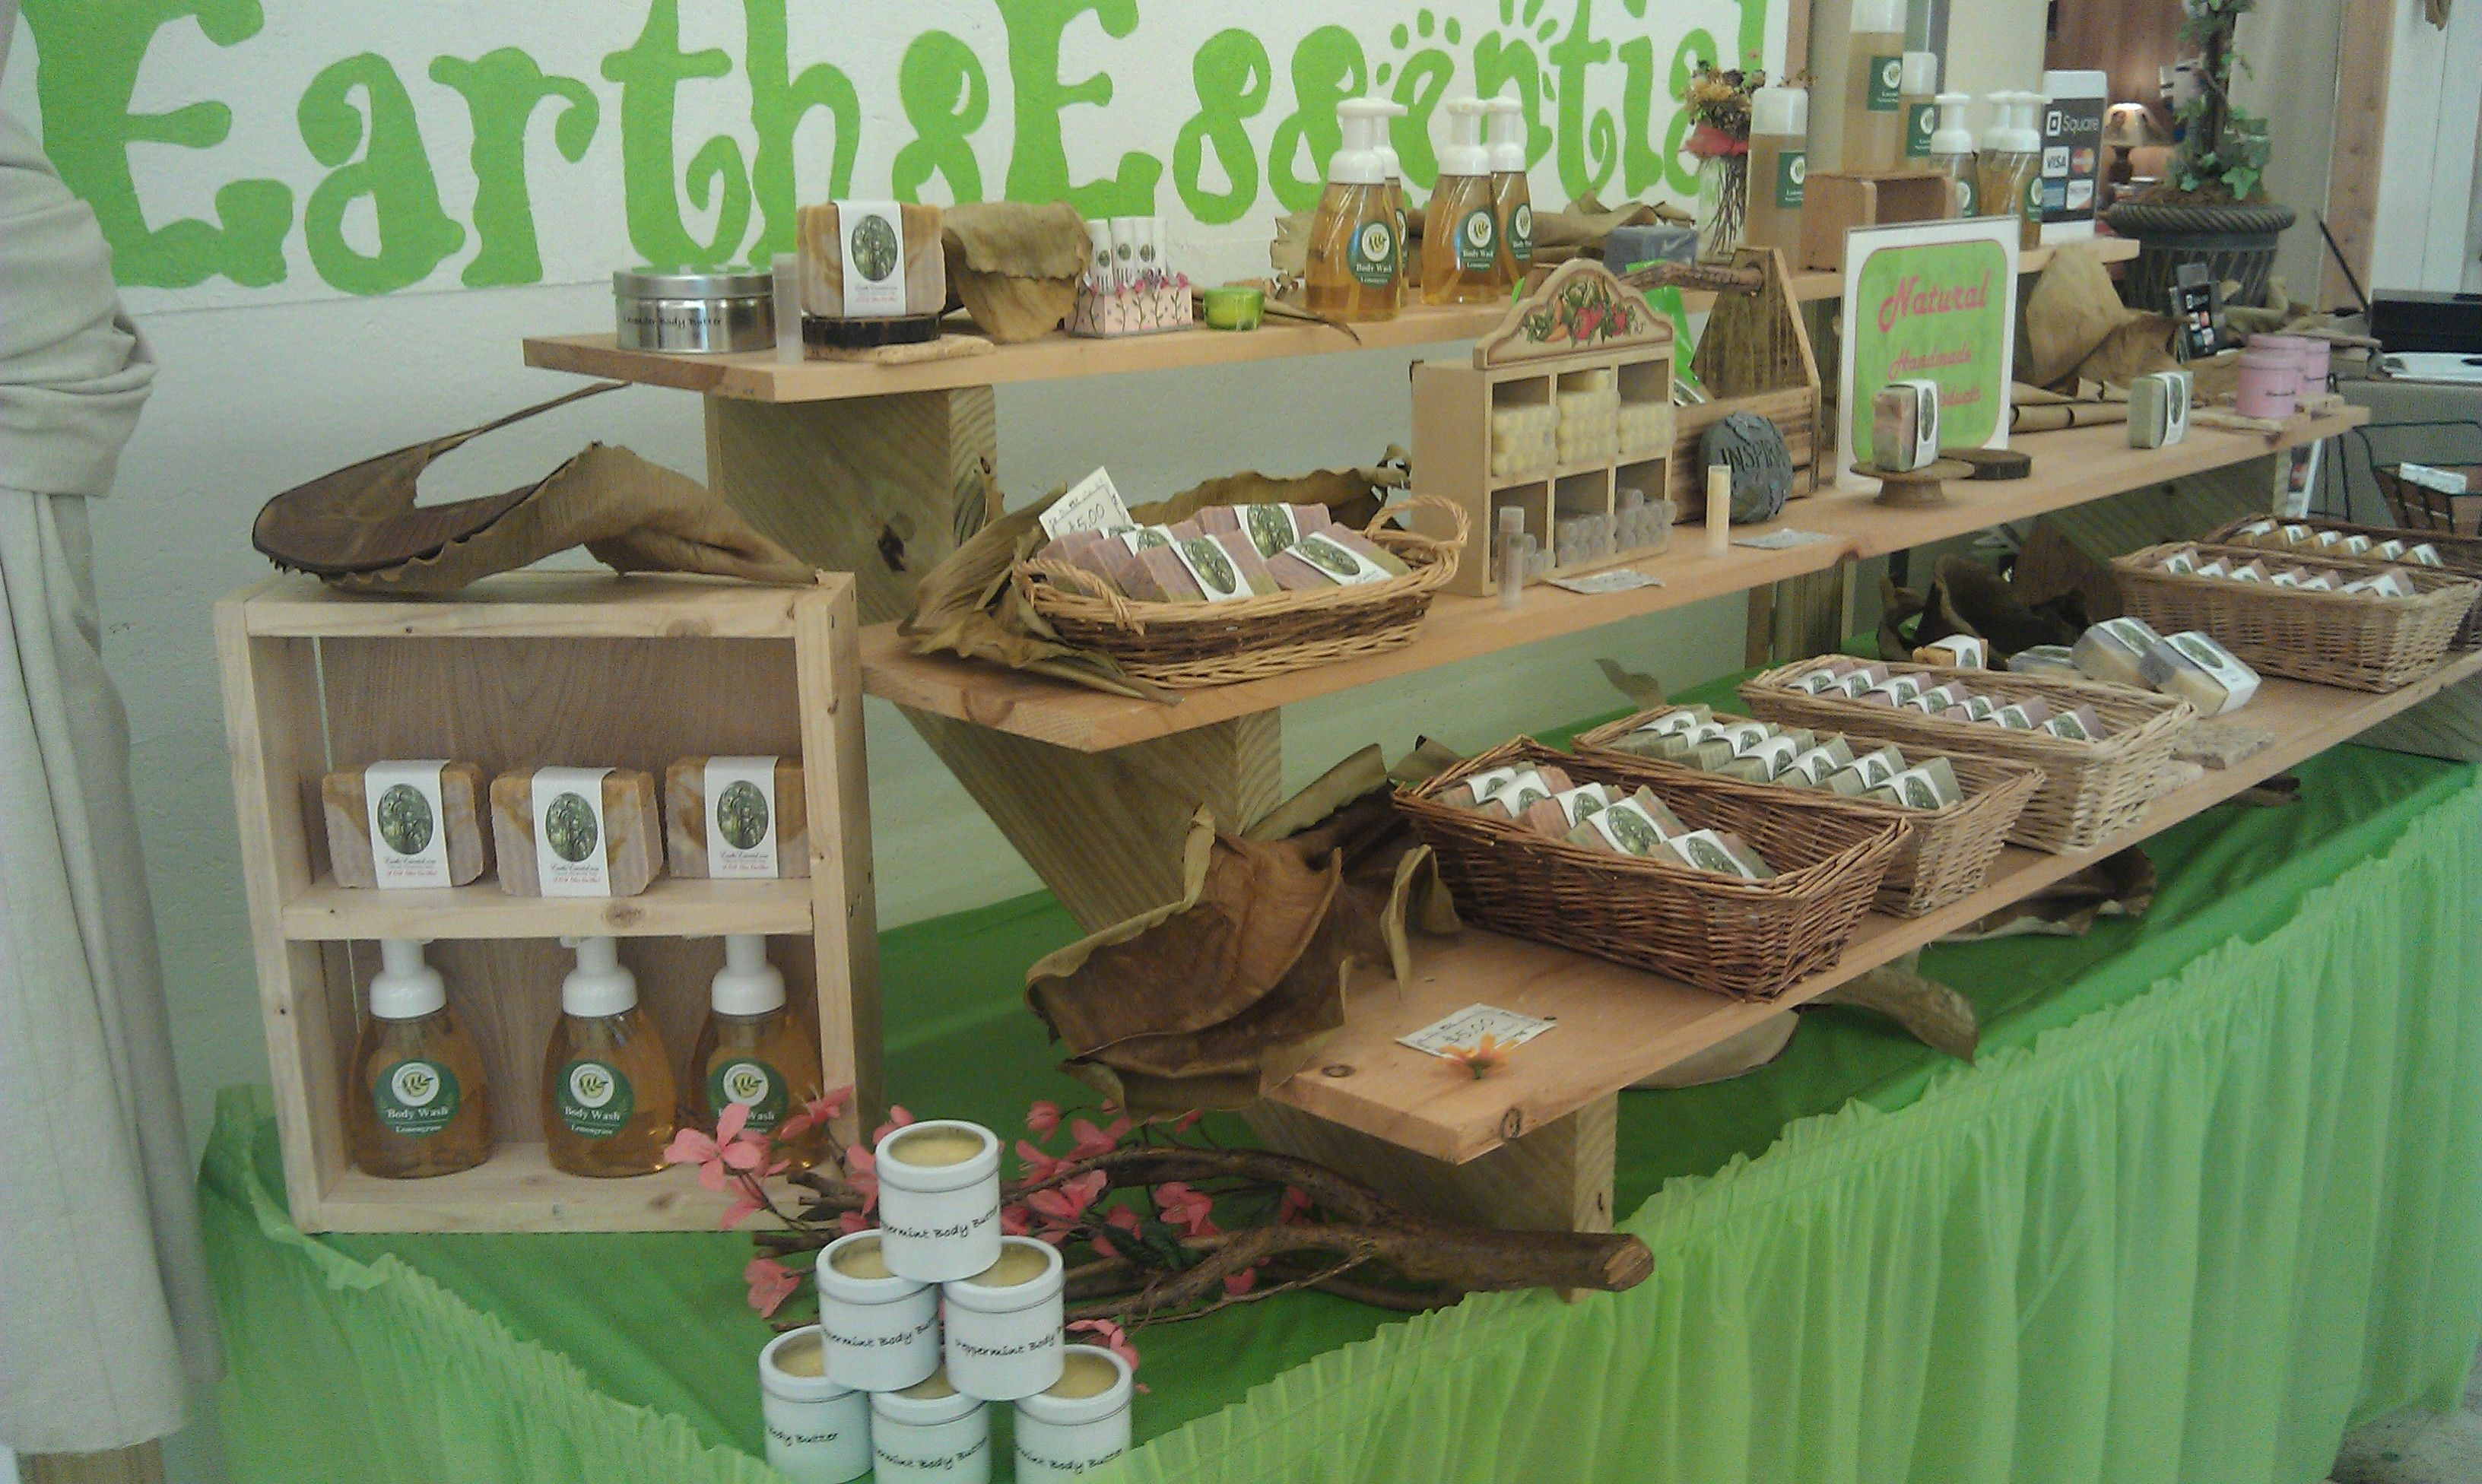 Earthsessential Com Store Display Of All Natural Hair And Skin